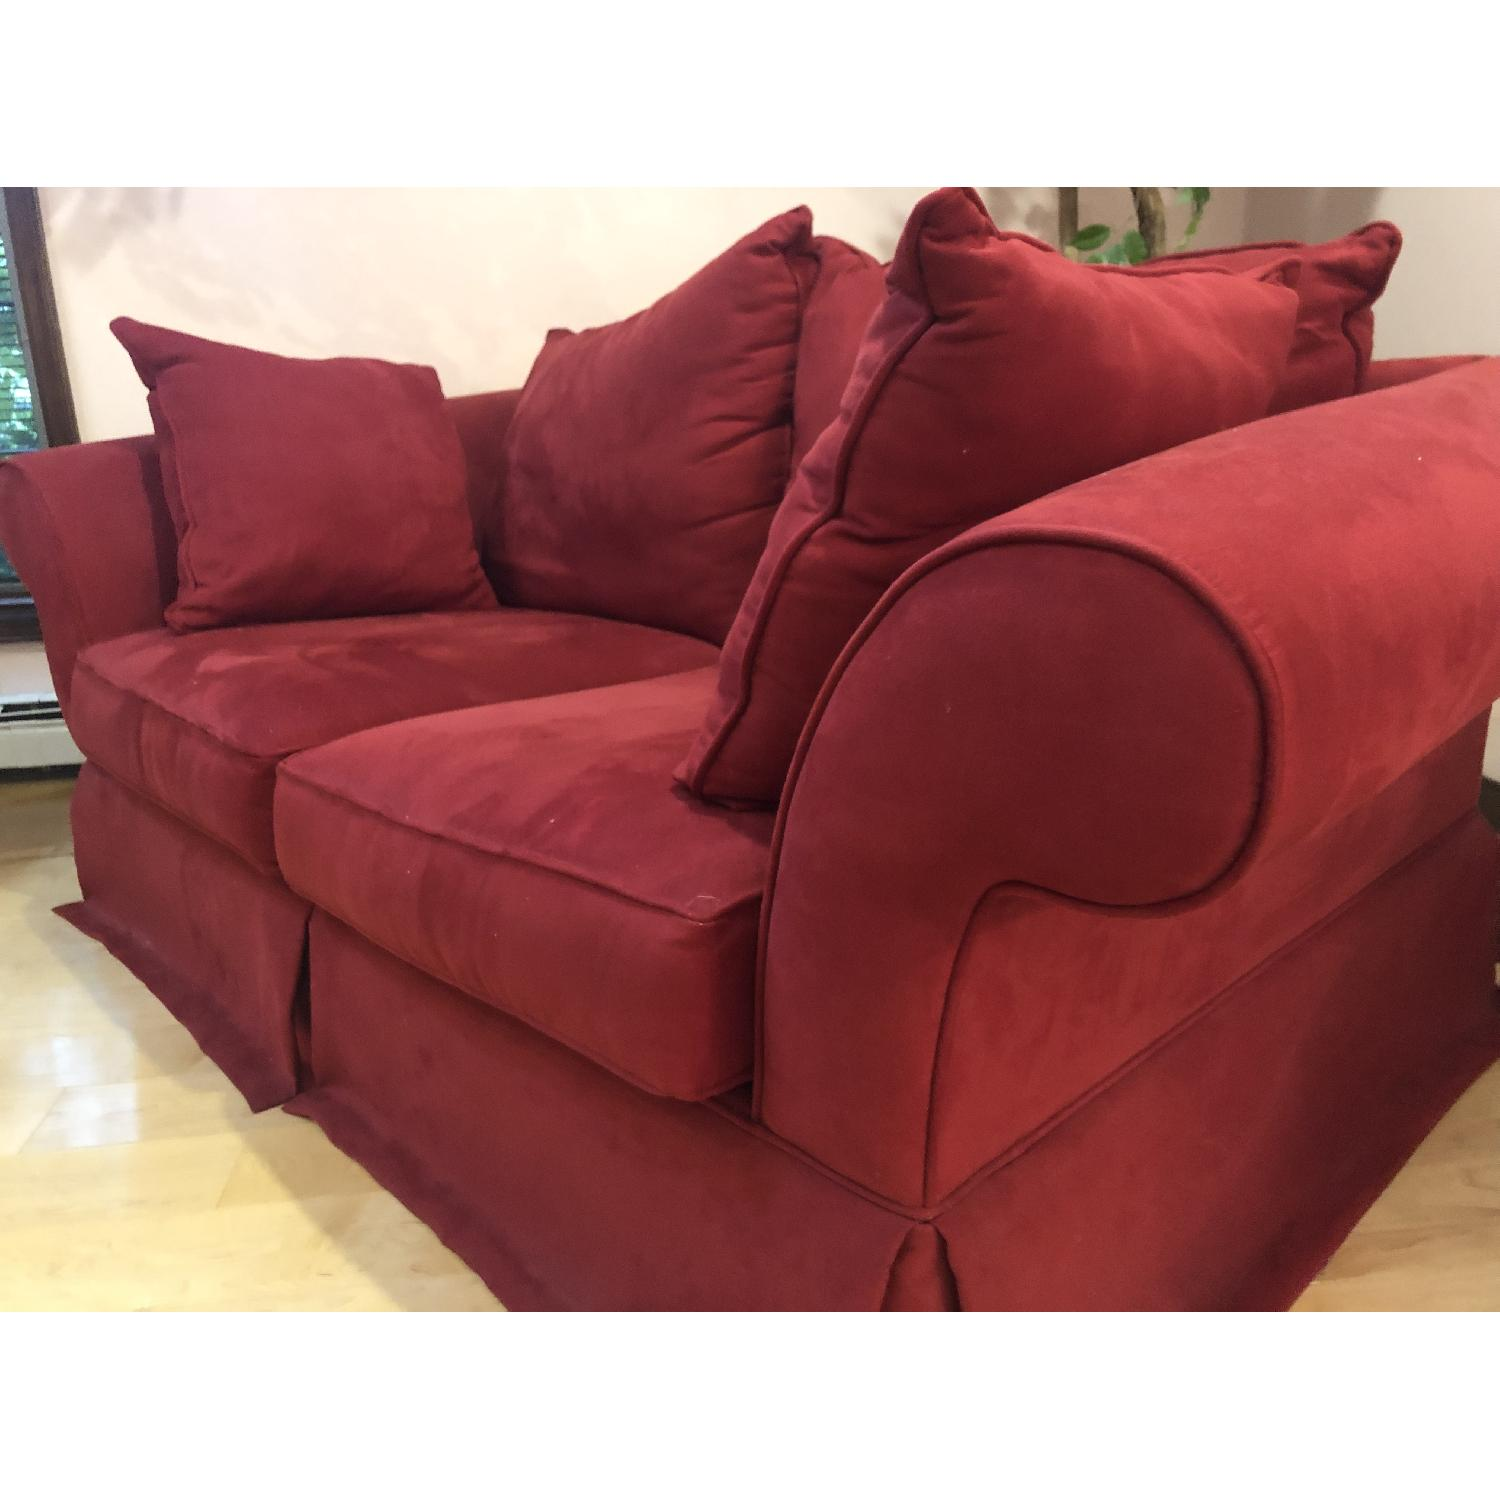 H.M. Richards Red Suede Loveseat - image-2